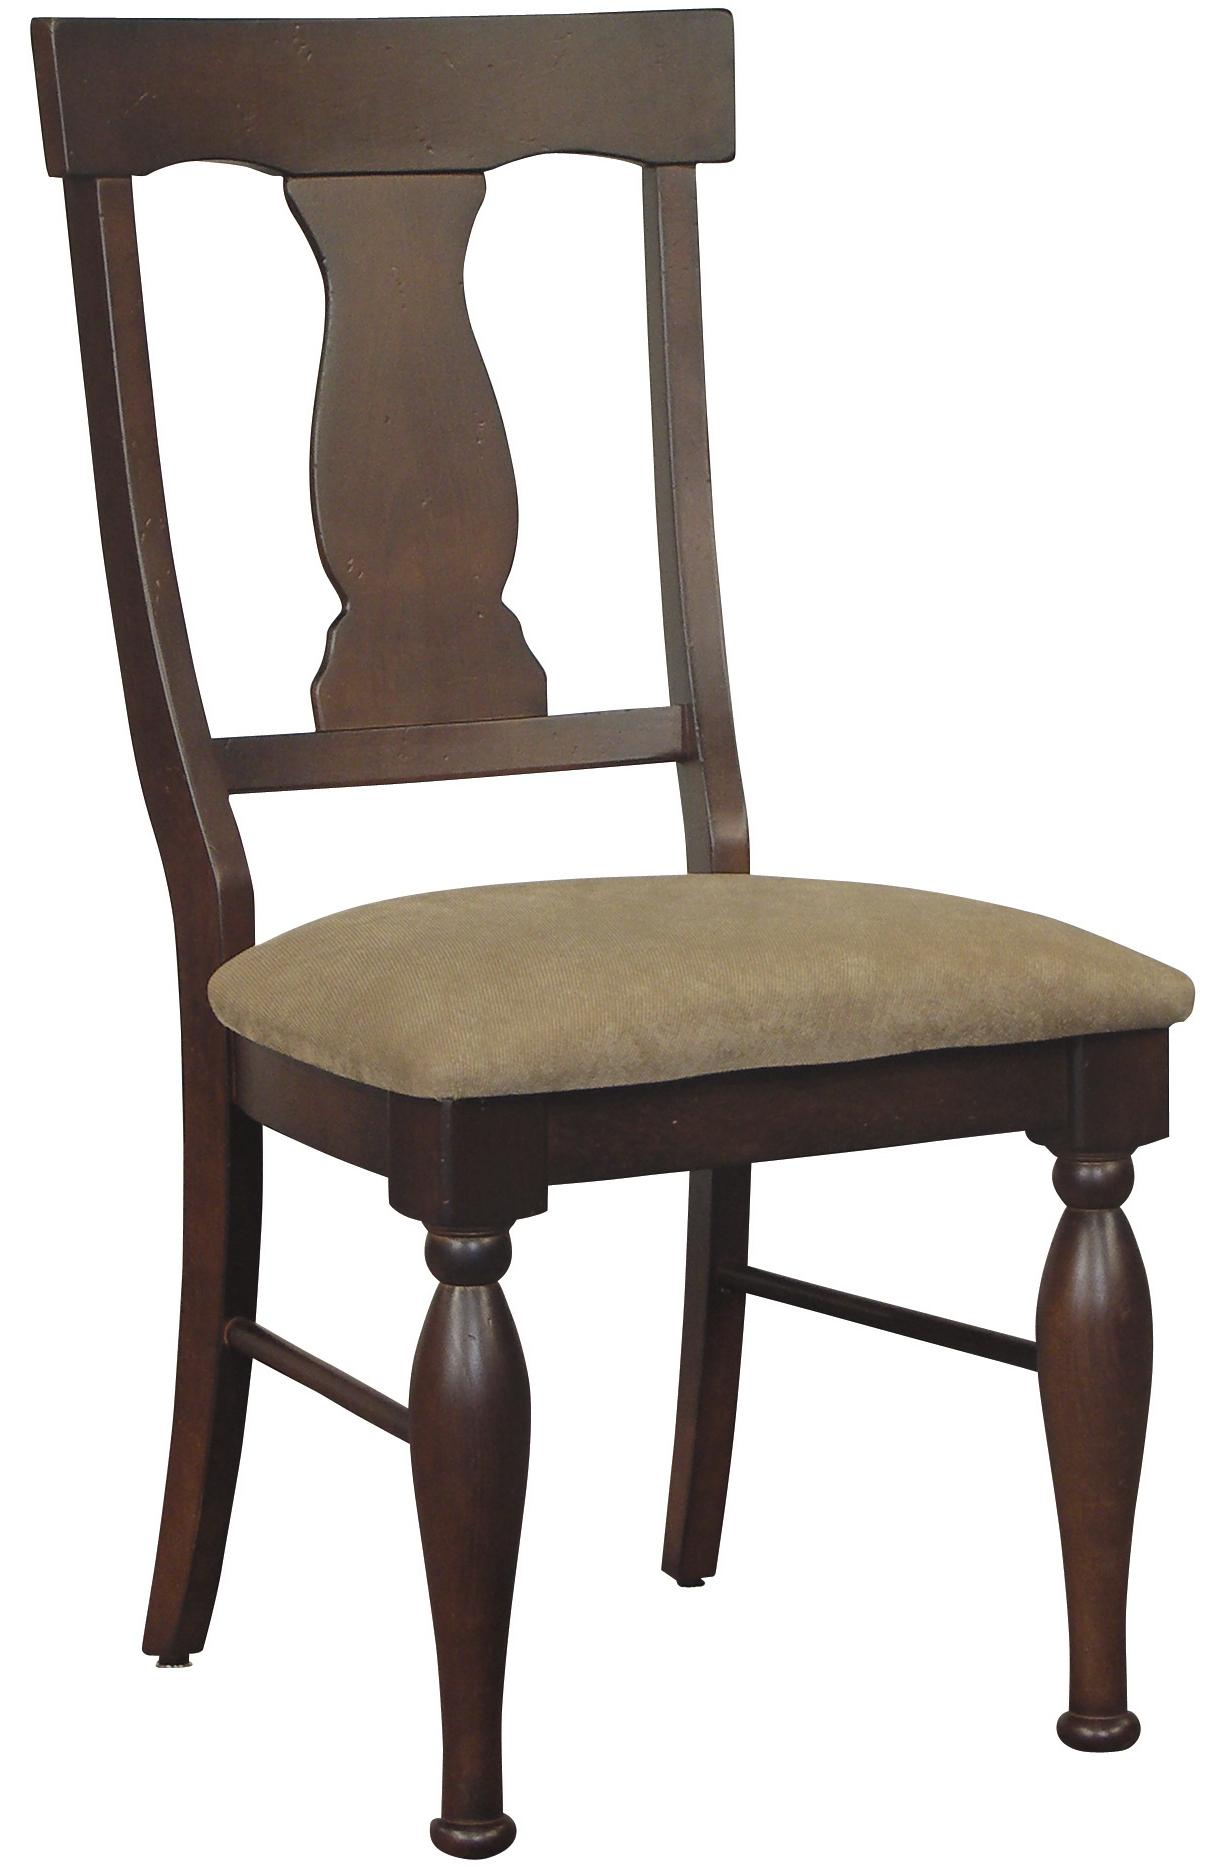 Dining Side Chair with Upholstered Seat, Splat Back and Turned Legs